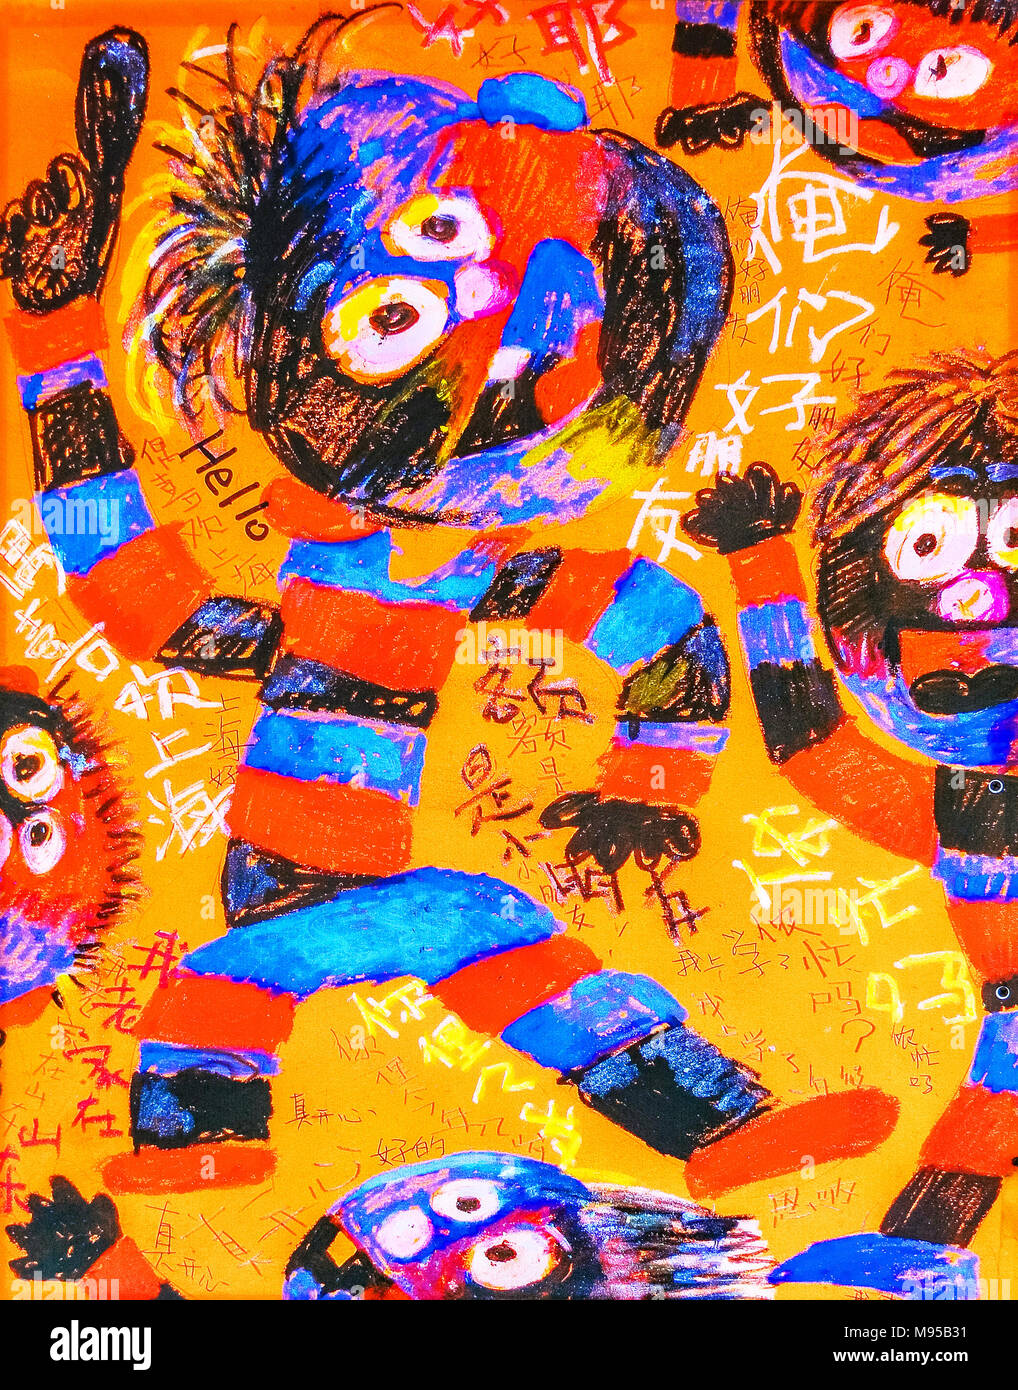 Artwork by Chinese primary school students on display at the 2010 China Expo Pavilion in Shanghai, China. - Stock Image